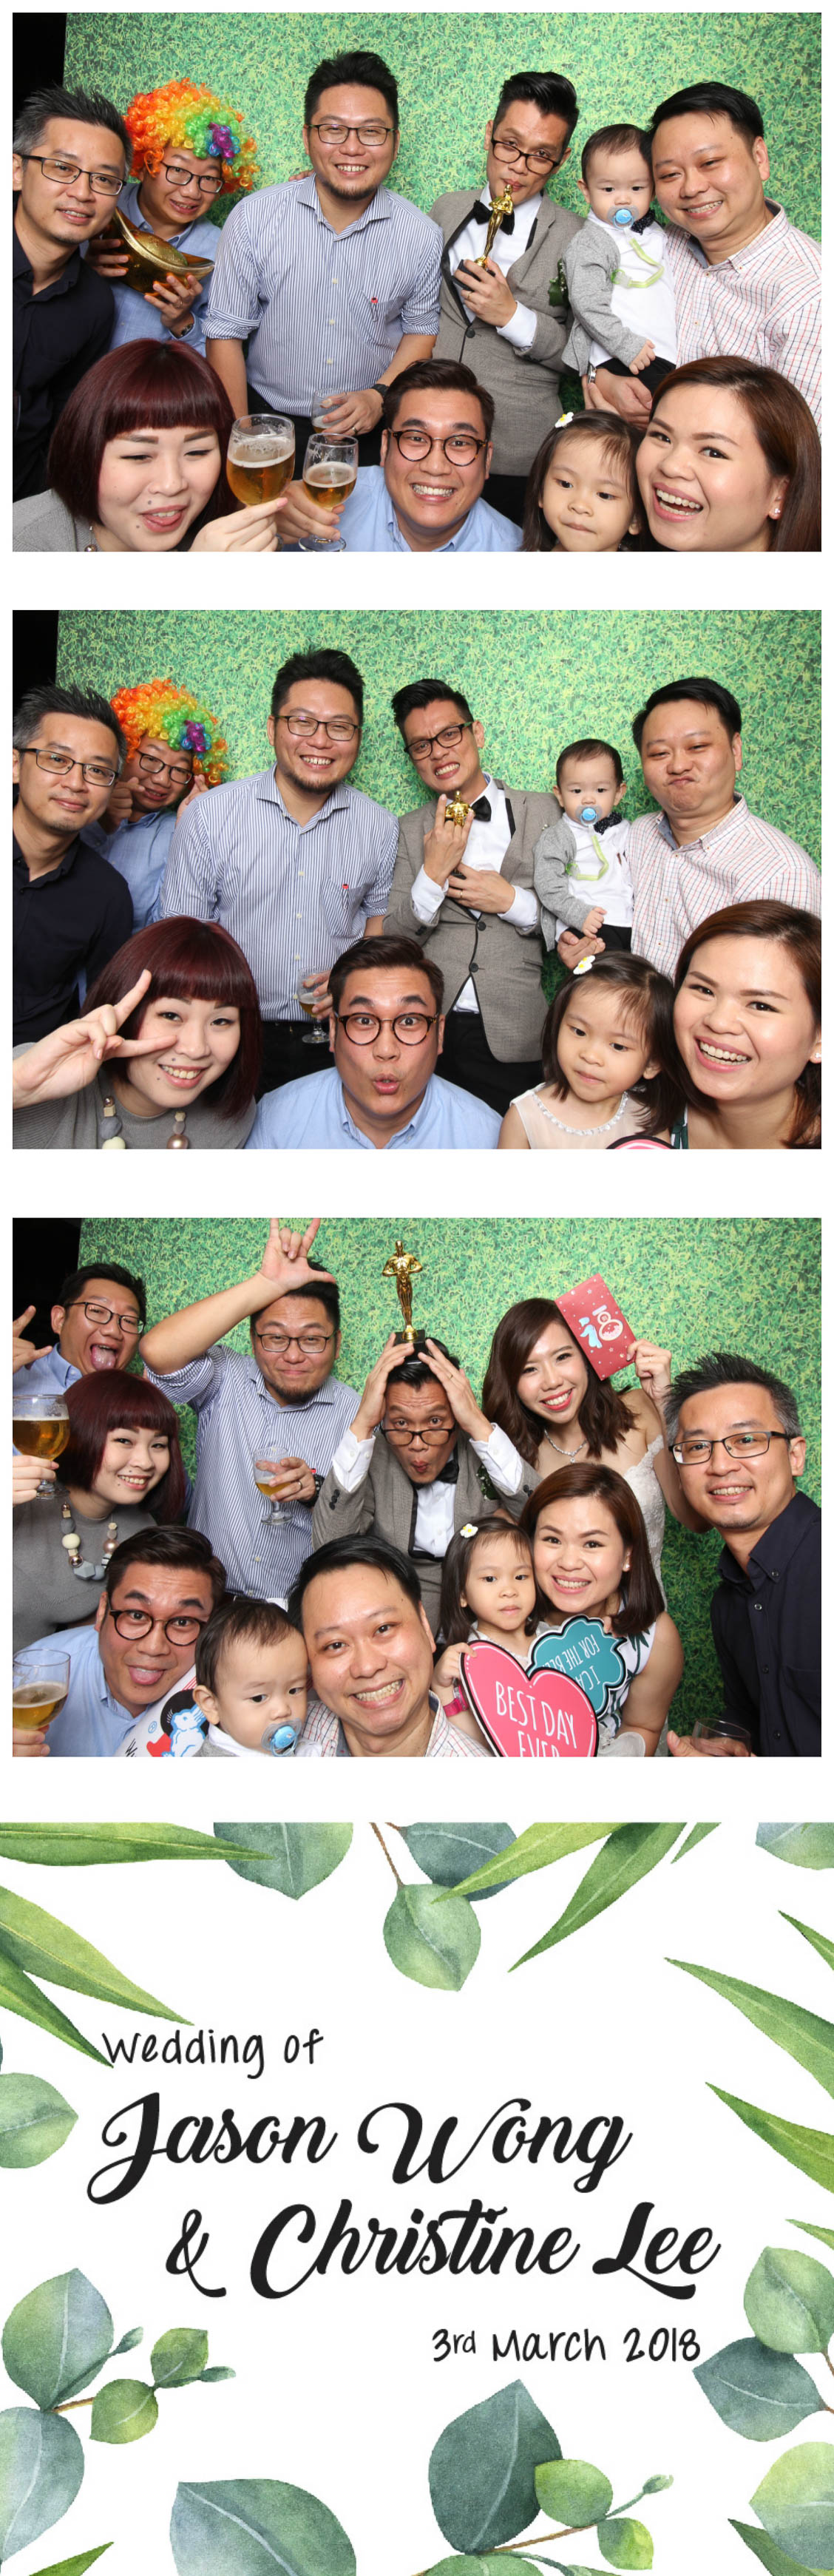 Photobooth 0302-52